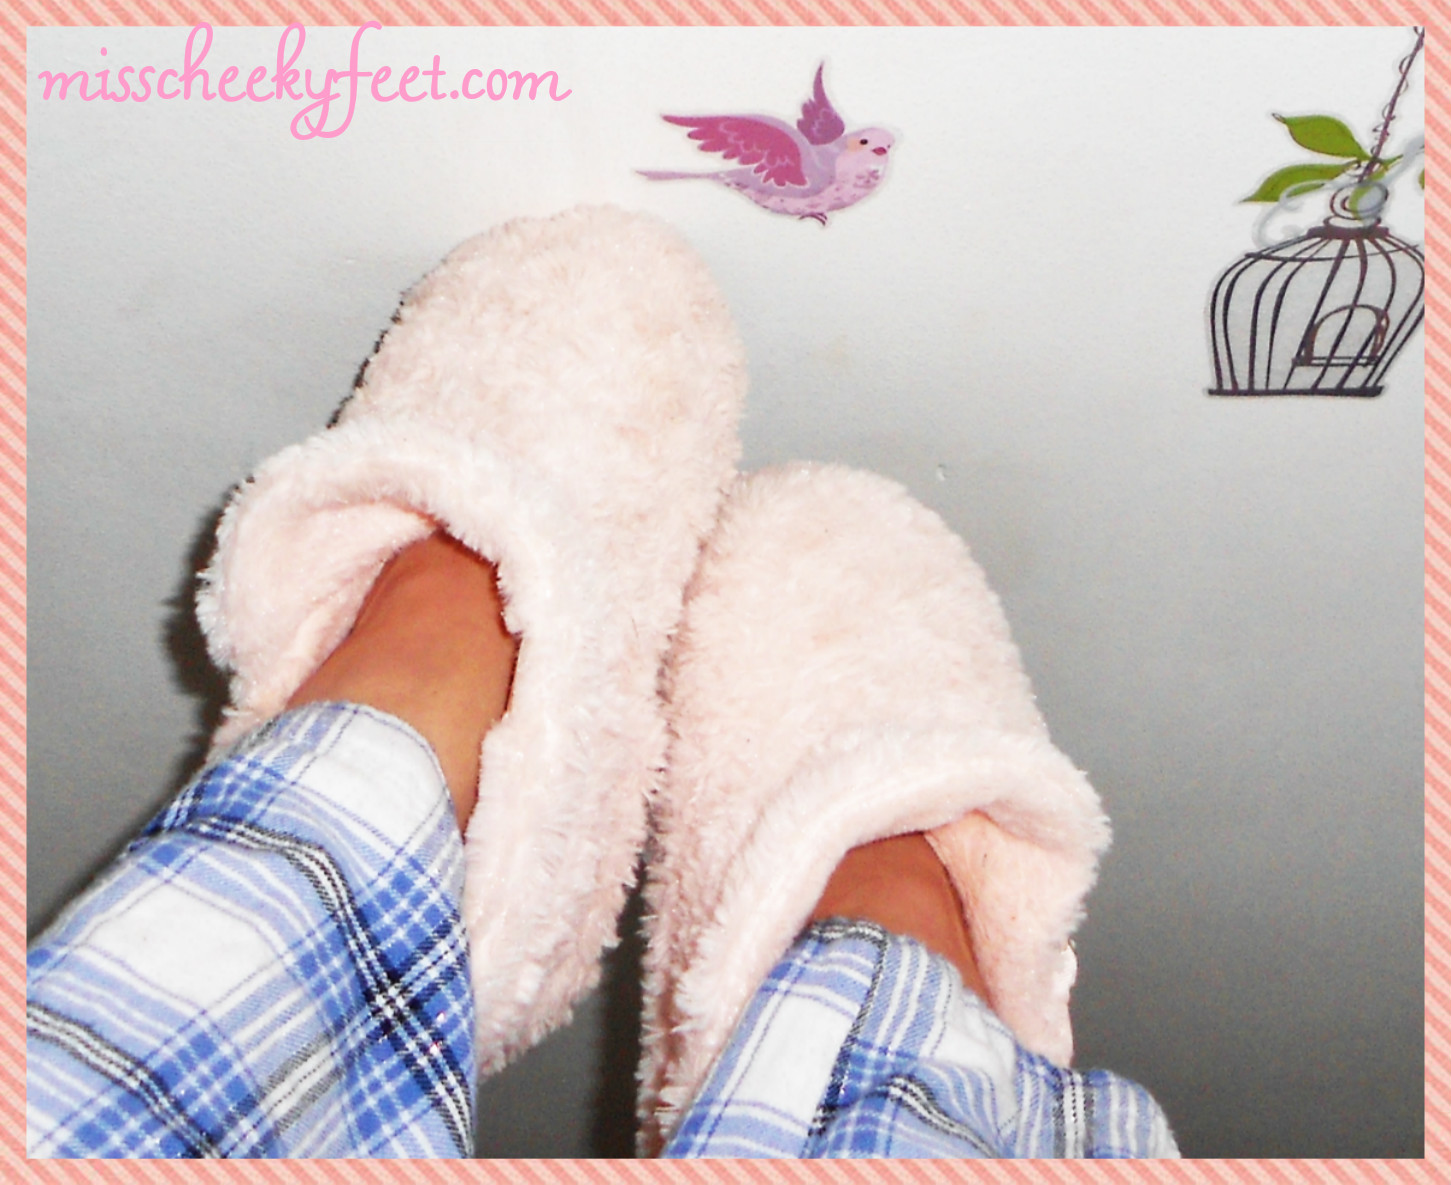 Slippers Cosy Sock Pics Miss Cheeky Feet